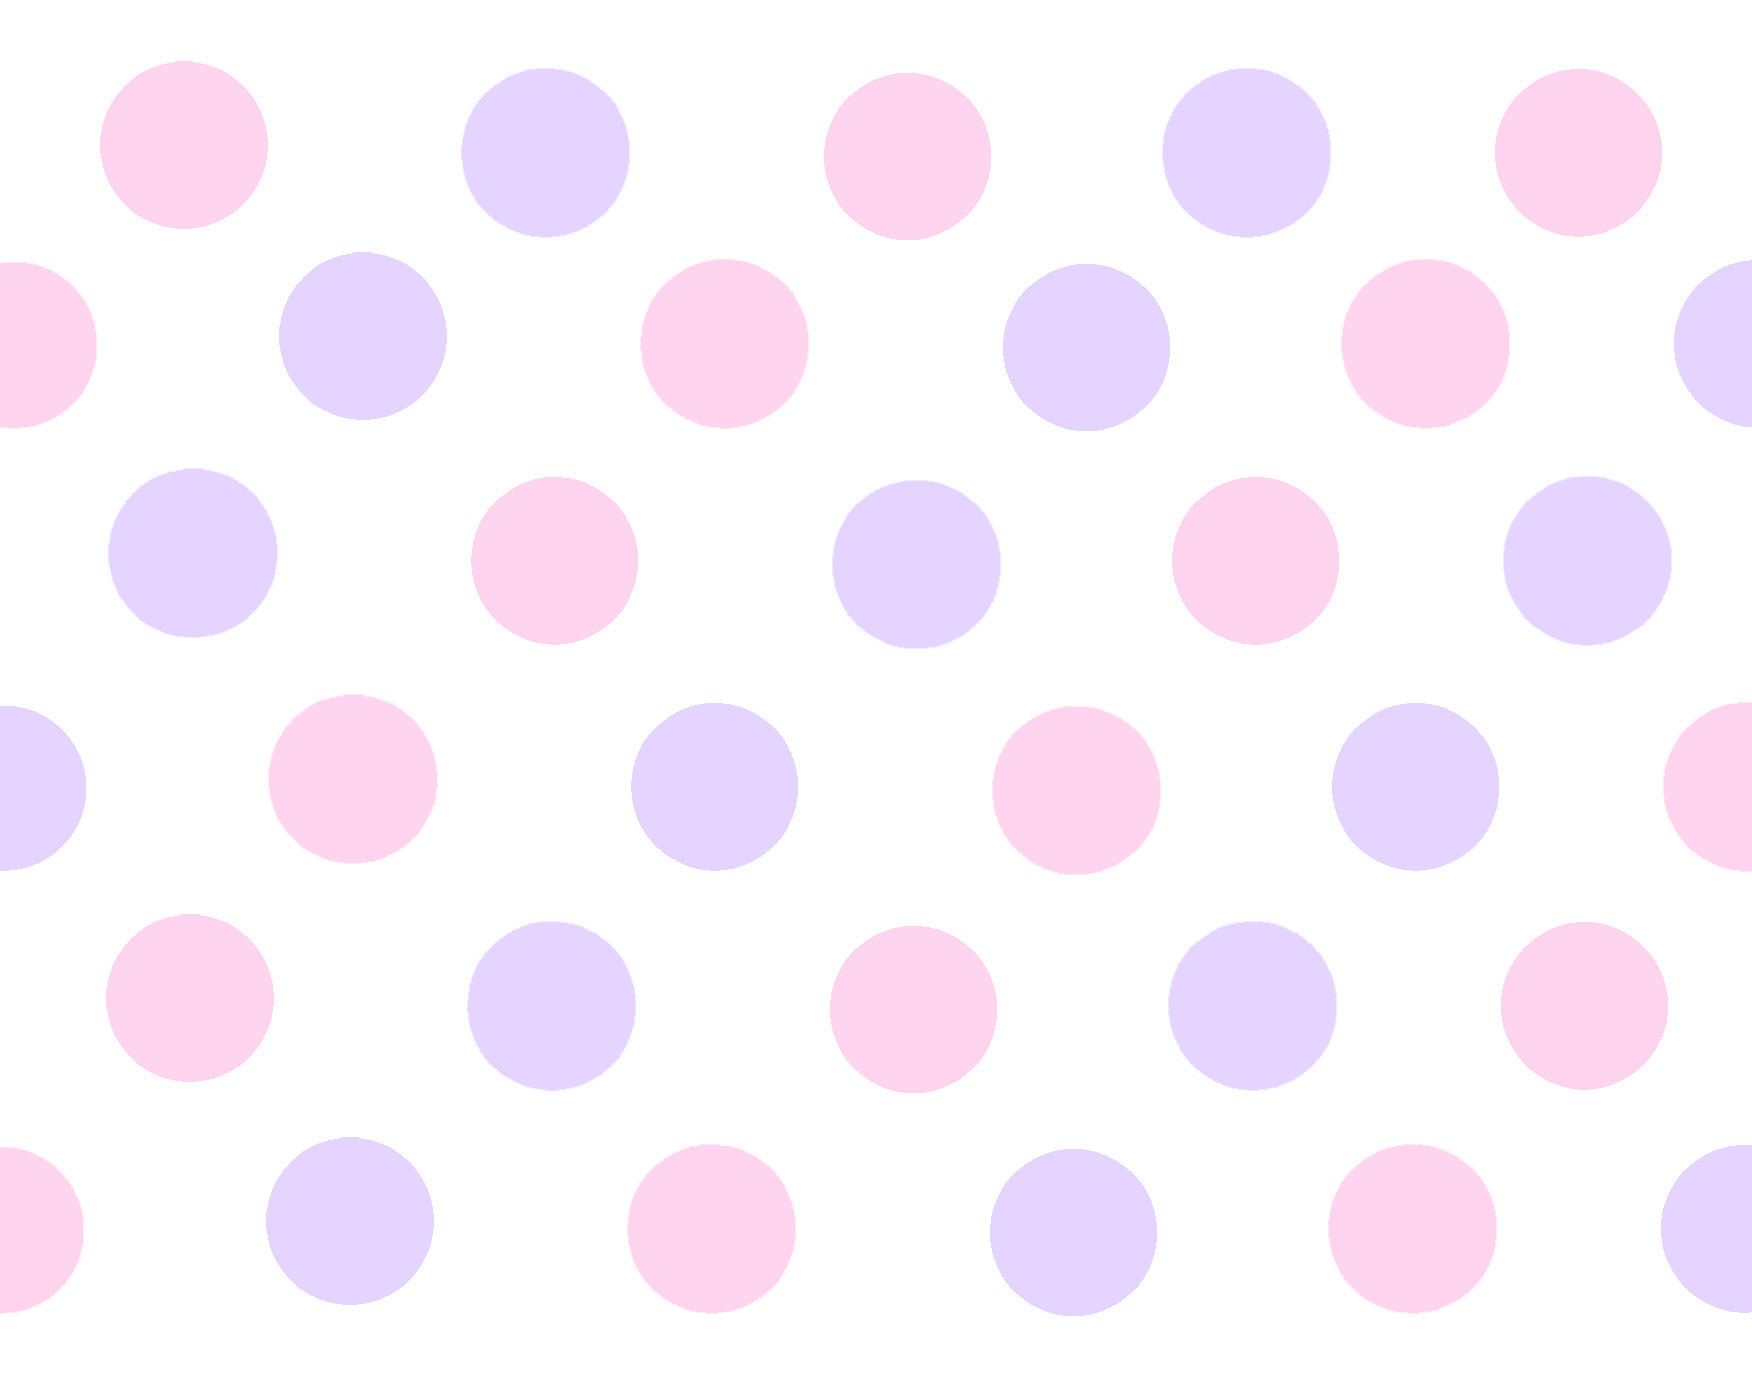 Cute Girly Pattern Wallpapers Cute Polka Dot Wallpapers 13 Wallpapers Adorable